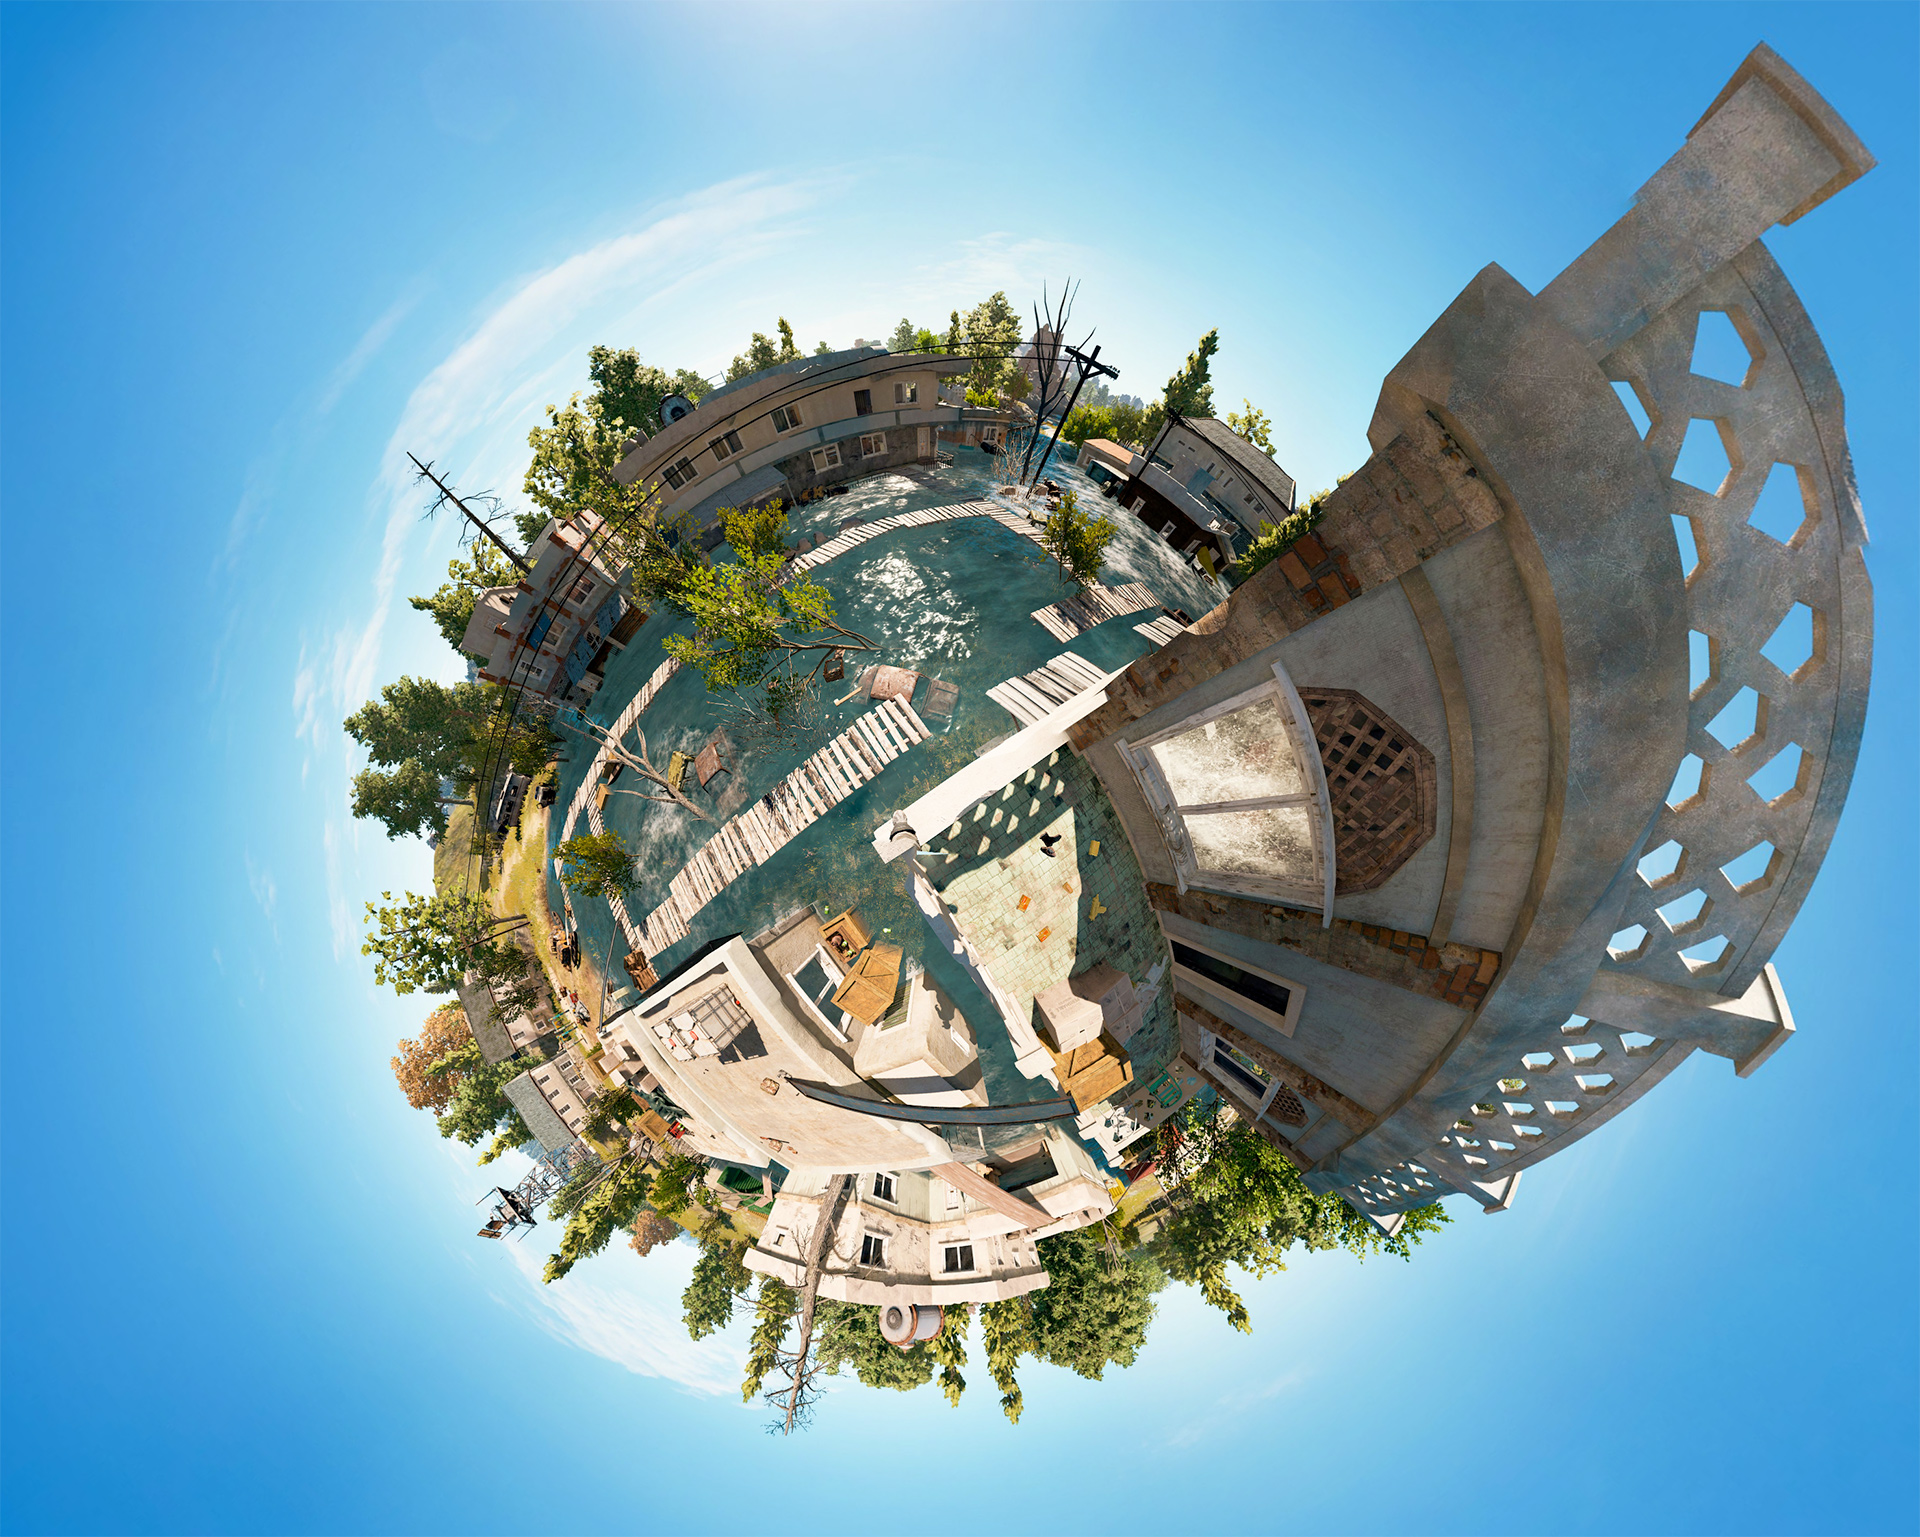 Water Town Tiny Planet View